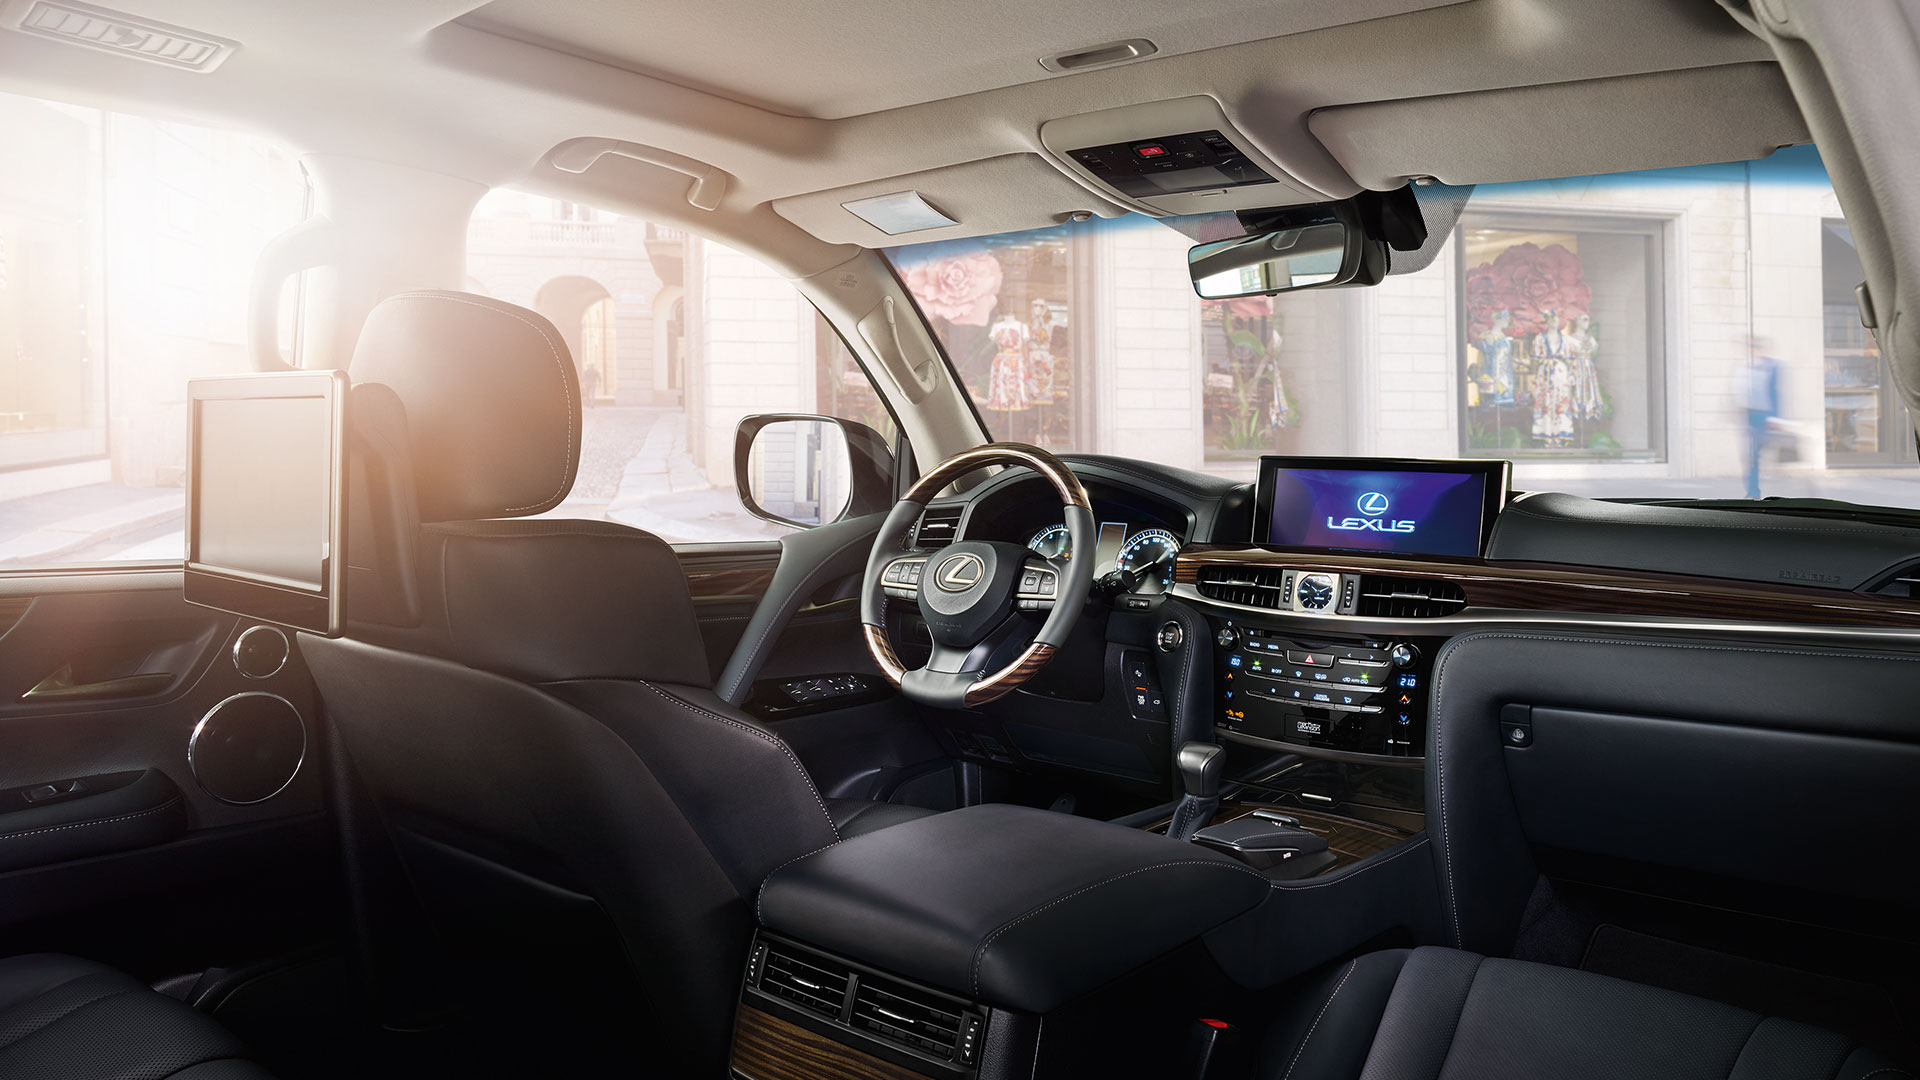 image route test 2018 lexus lx my18 gallery 005